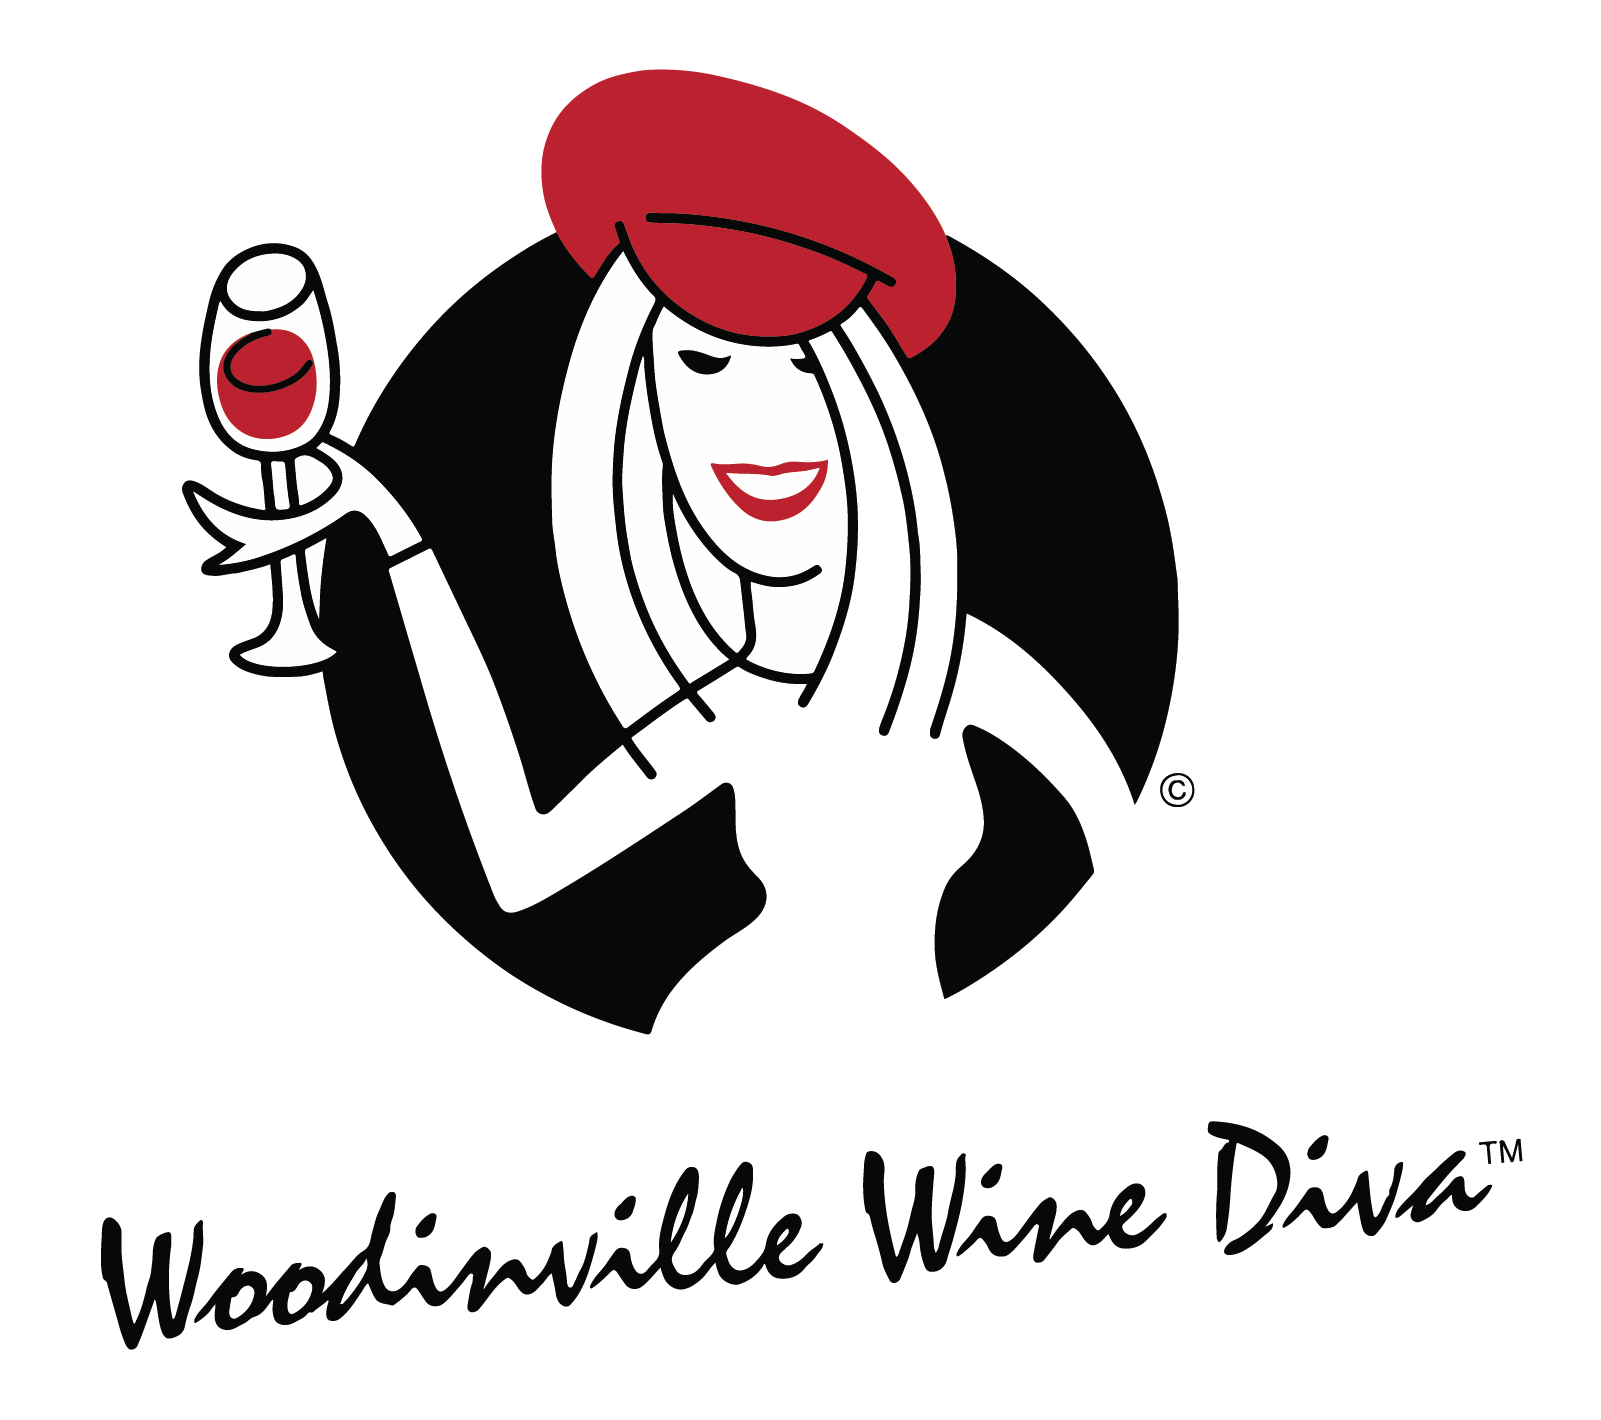 Woodinville wine diva the. Taste clipart smell taste